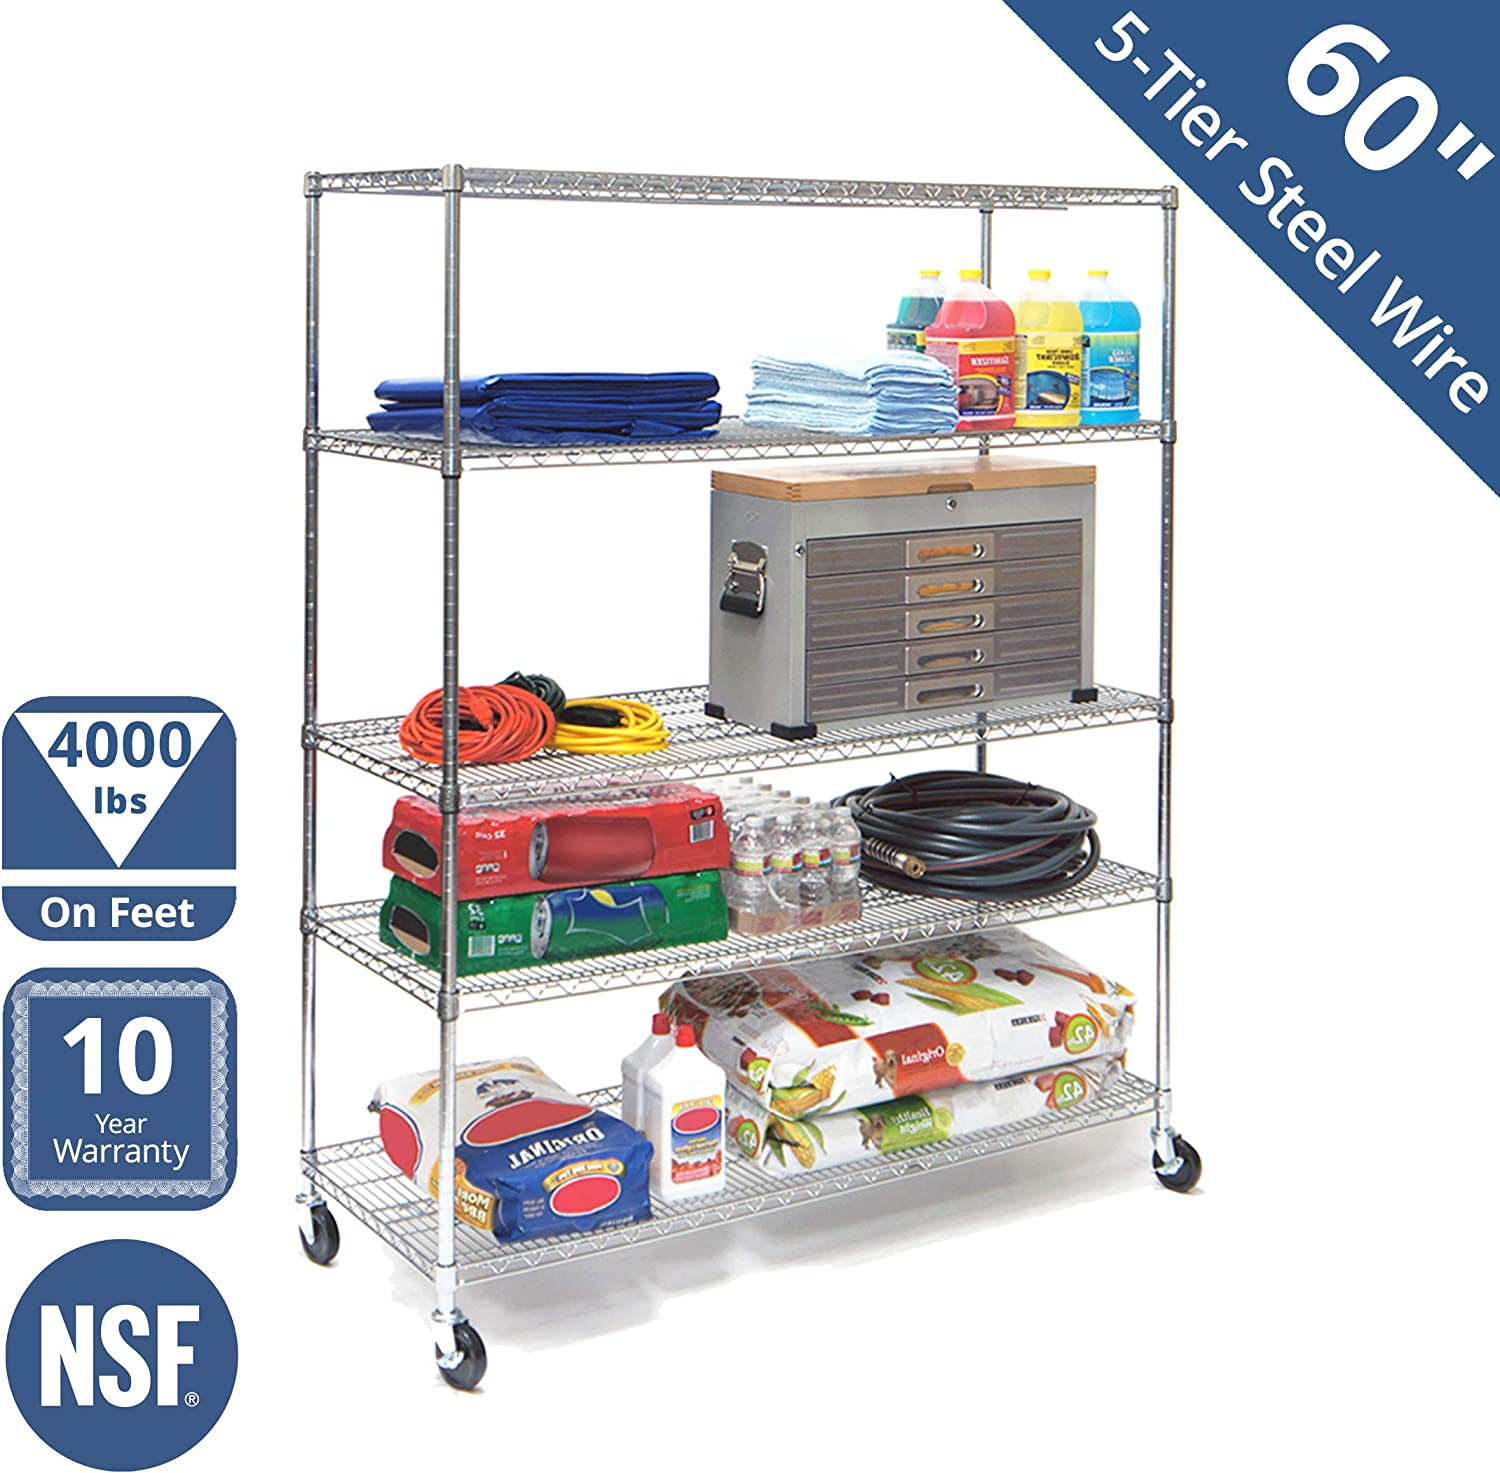 "Seville Classics MEGA Rack UltraDurable Commercial-Grade 5-Tier NSF-Certified Steel Wire Shelving with Wheels, 60"" W x 24"" D, Chrome"